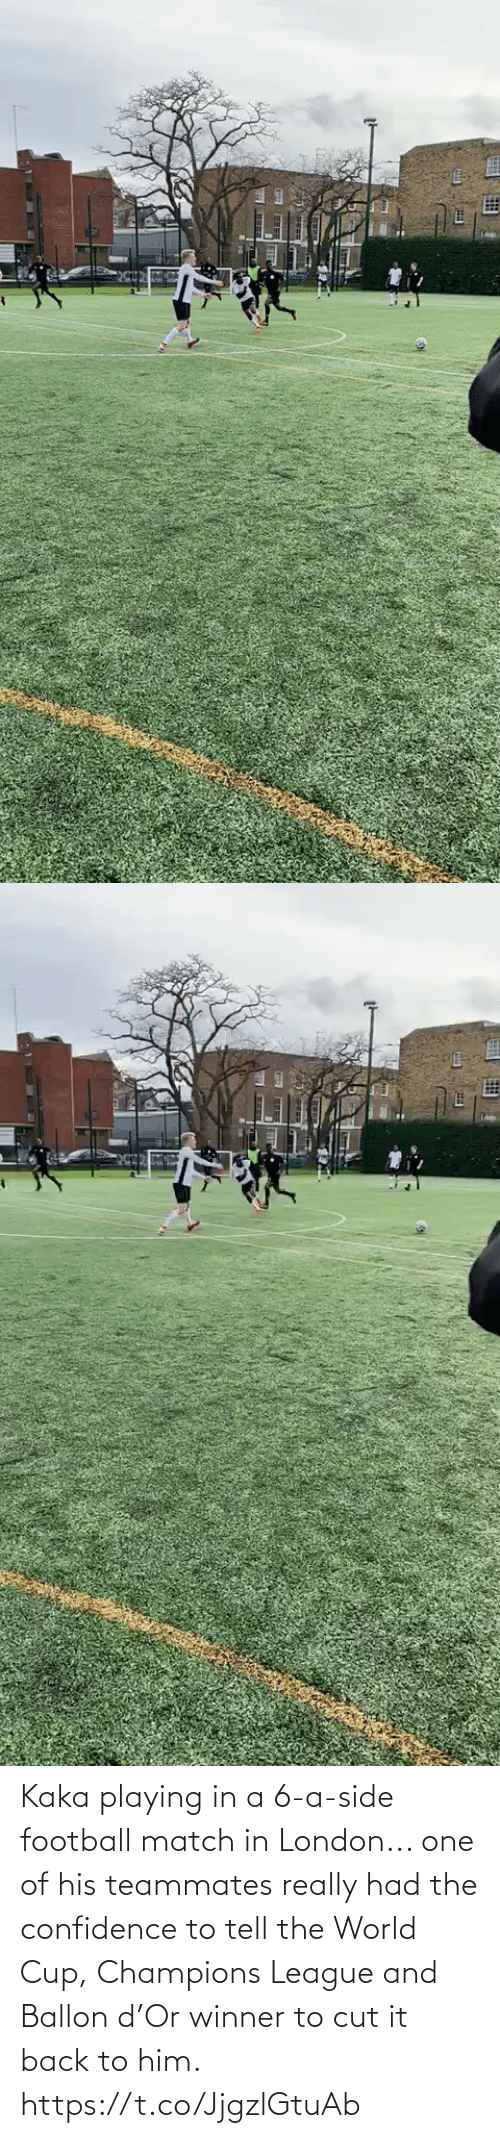 Cut: Kaka playing in a 6-a-side football match in London... one of his teammates really had the confidence to tell the World Cup, Champions League and Ballon d'Or winner to cut it back to him.   https://t.co/JjgzlGtuAb